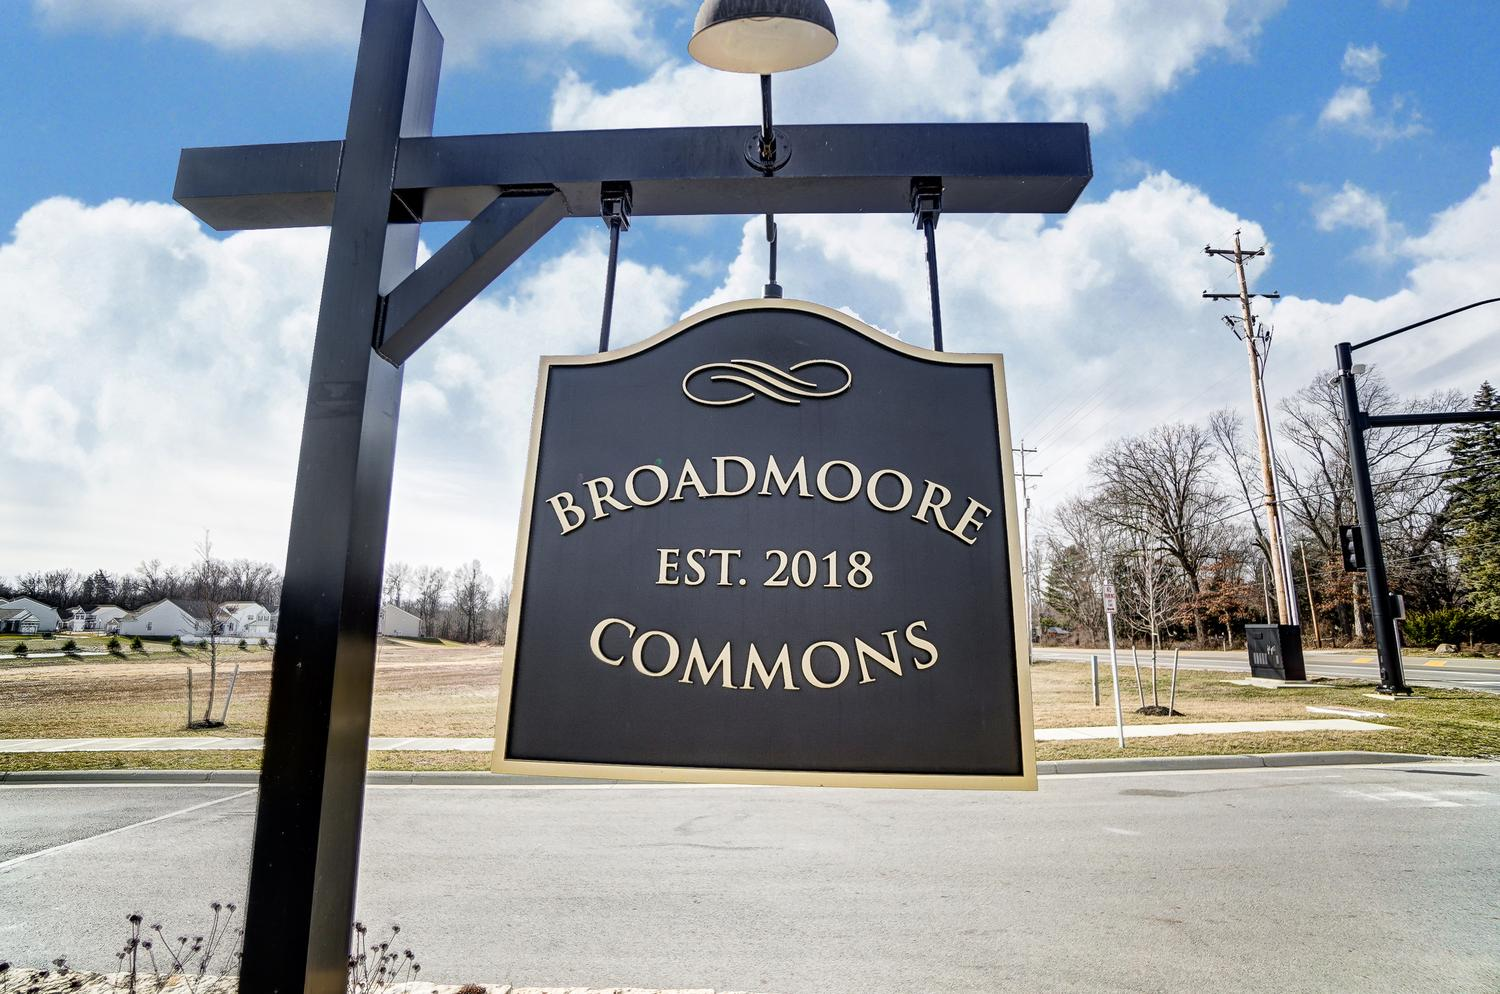 Broadmoore Commons - Lifestyle Detached Patio Homes